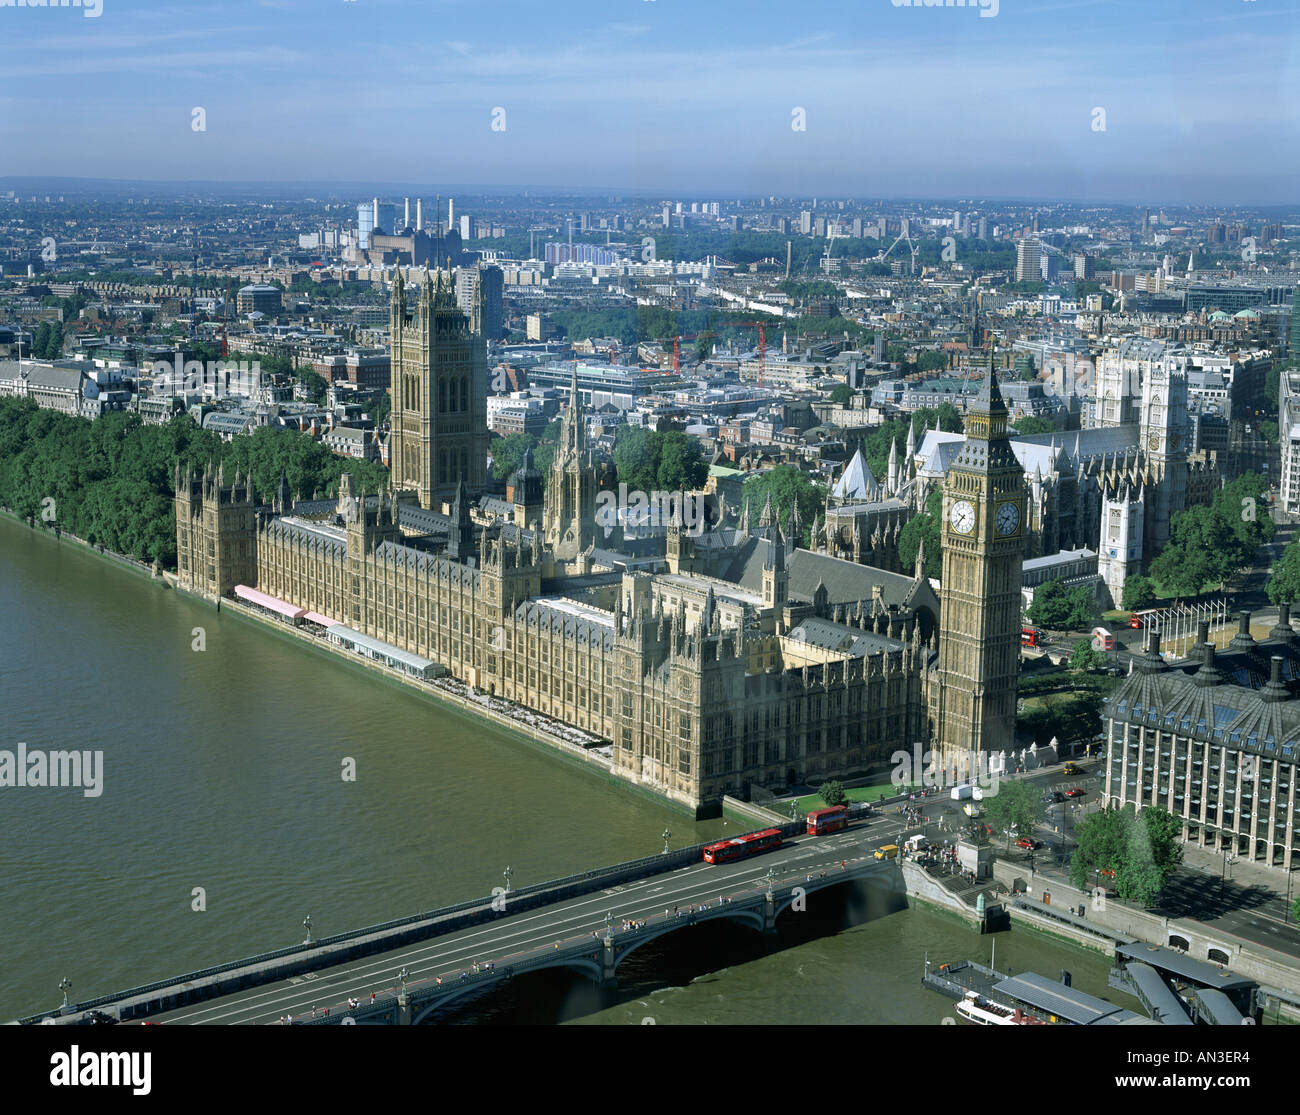 City Skyline / Thames River & Houses of Parliament / View from London Eye, London, England Stock Photo